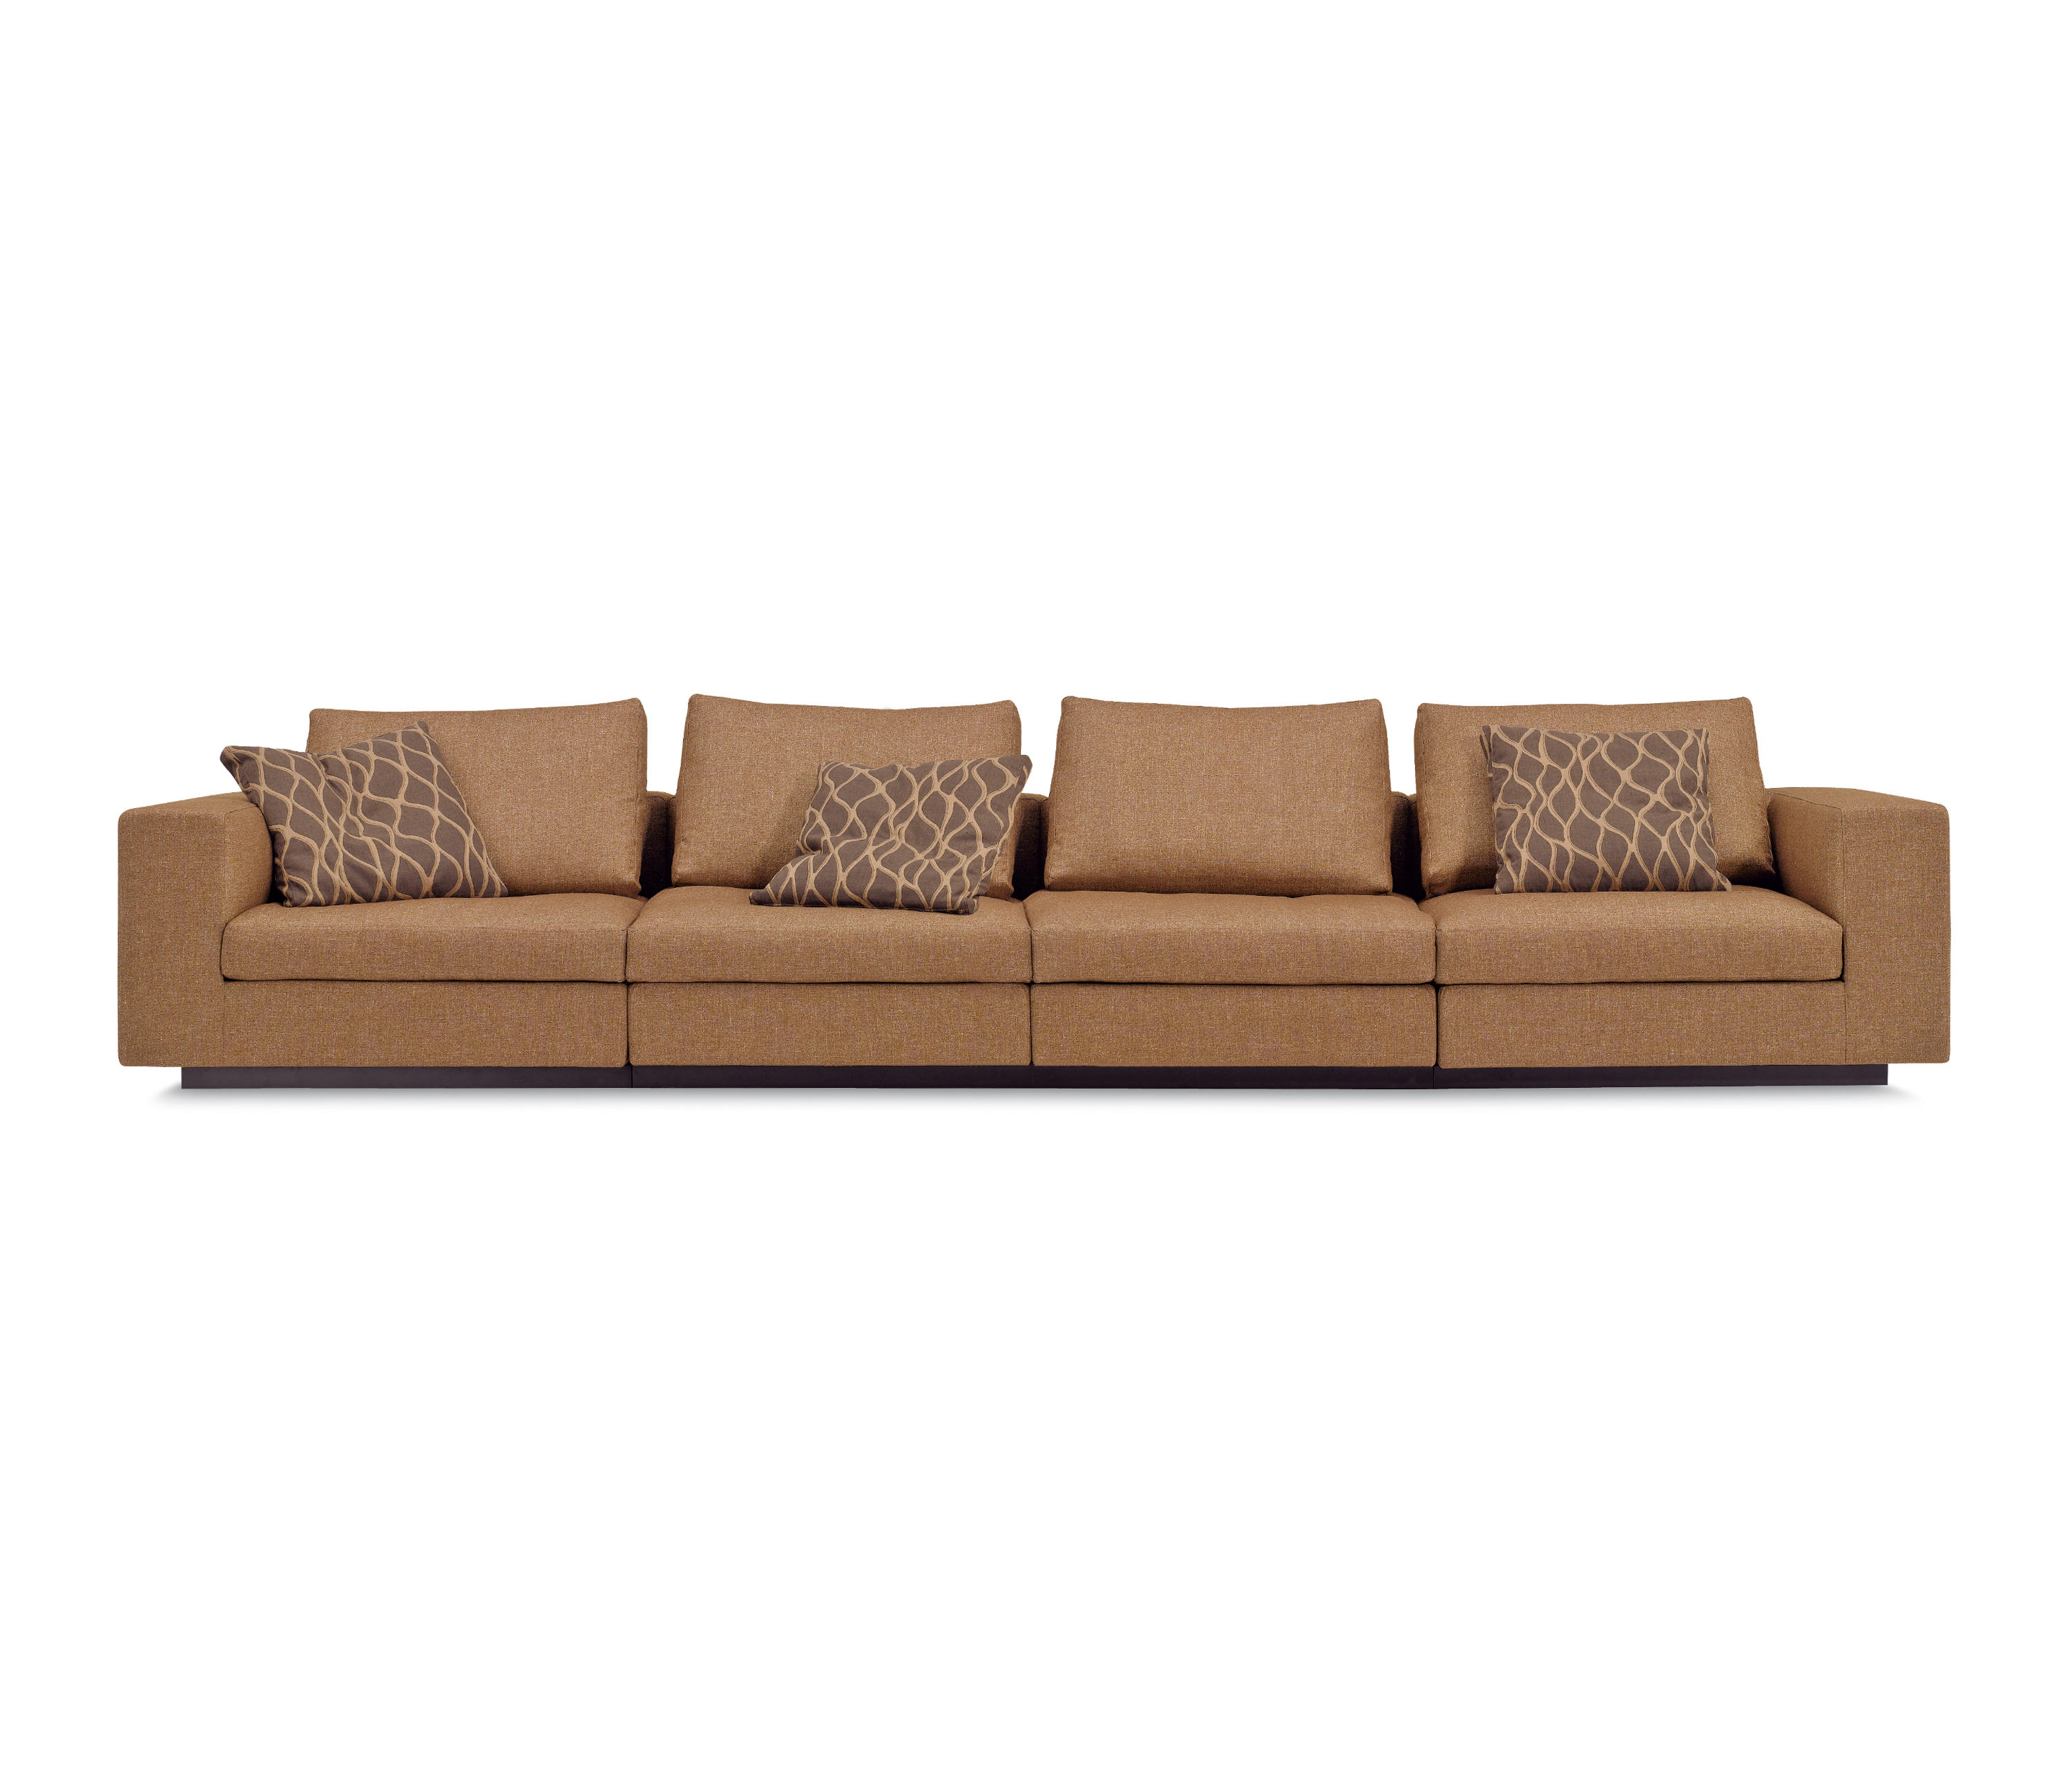 living landscape 750 sofa lounge sofas from walter knoll architonic. Black Bedroom Furniture Sets. Home Design Ideas